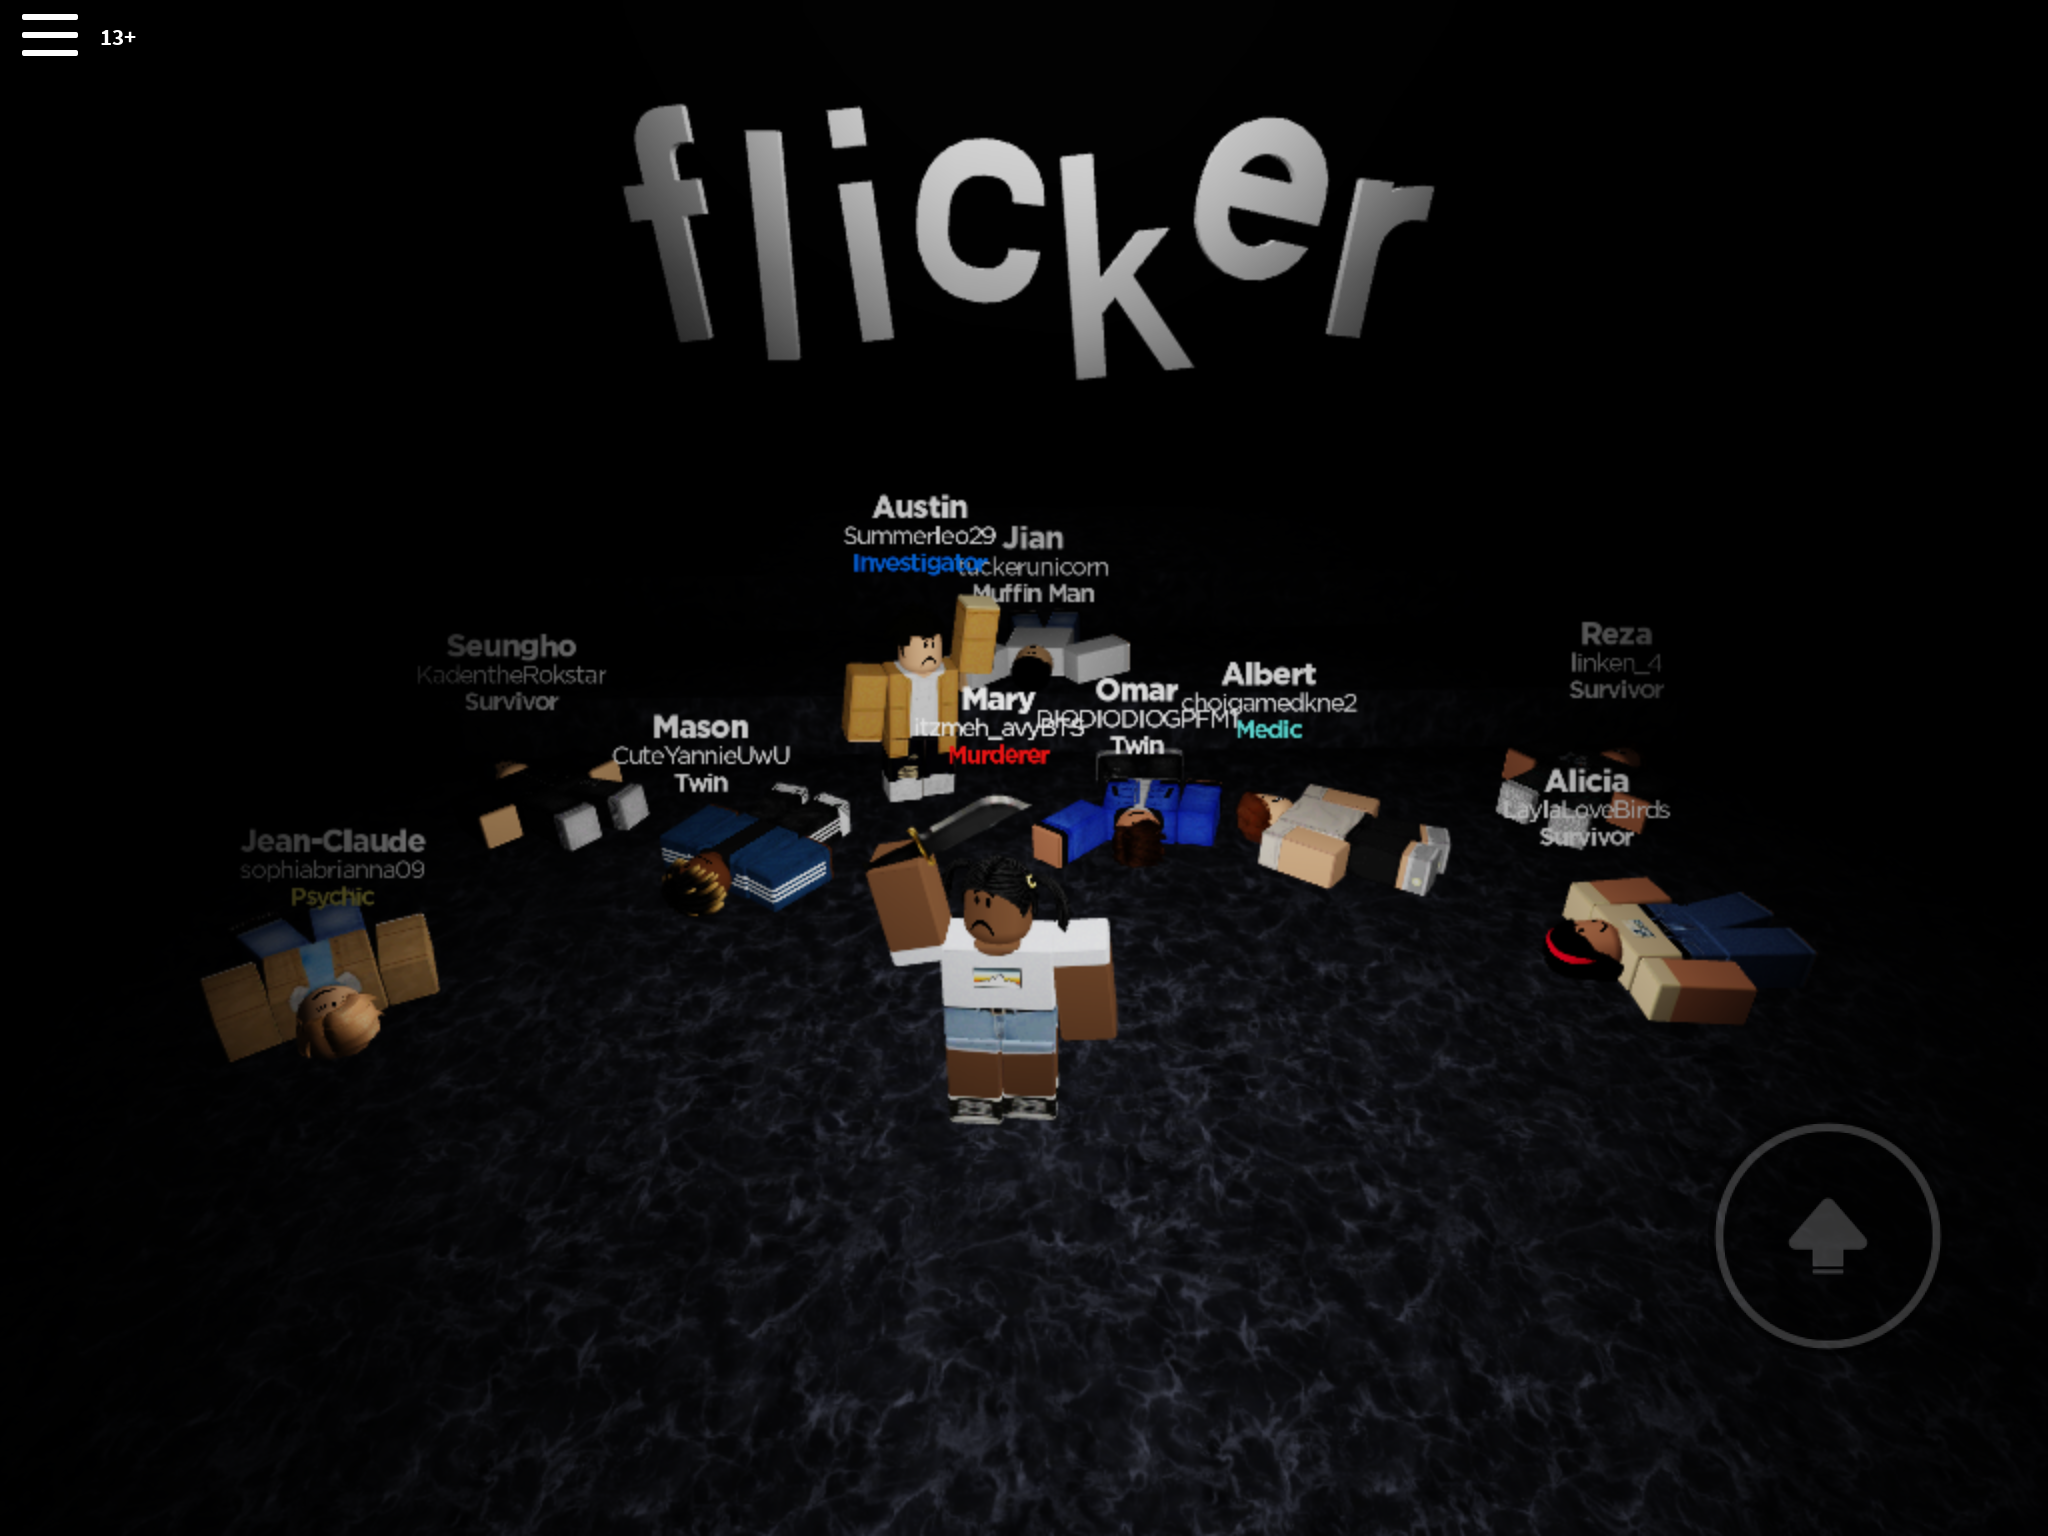 Burr Roblox Memes Pin By Kota On Fliker In Roblox In 2020 Roblox Memes Roblox Flicker